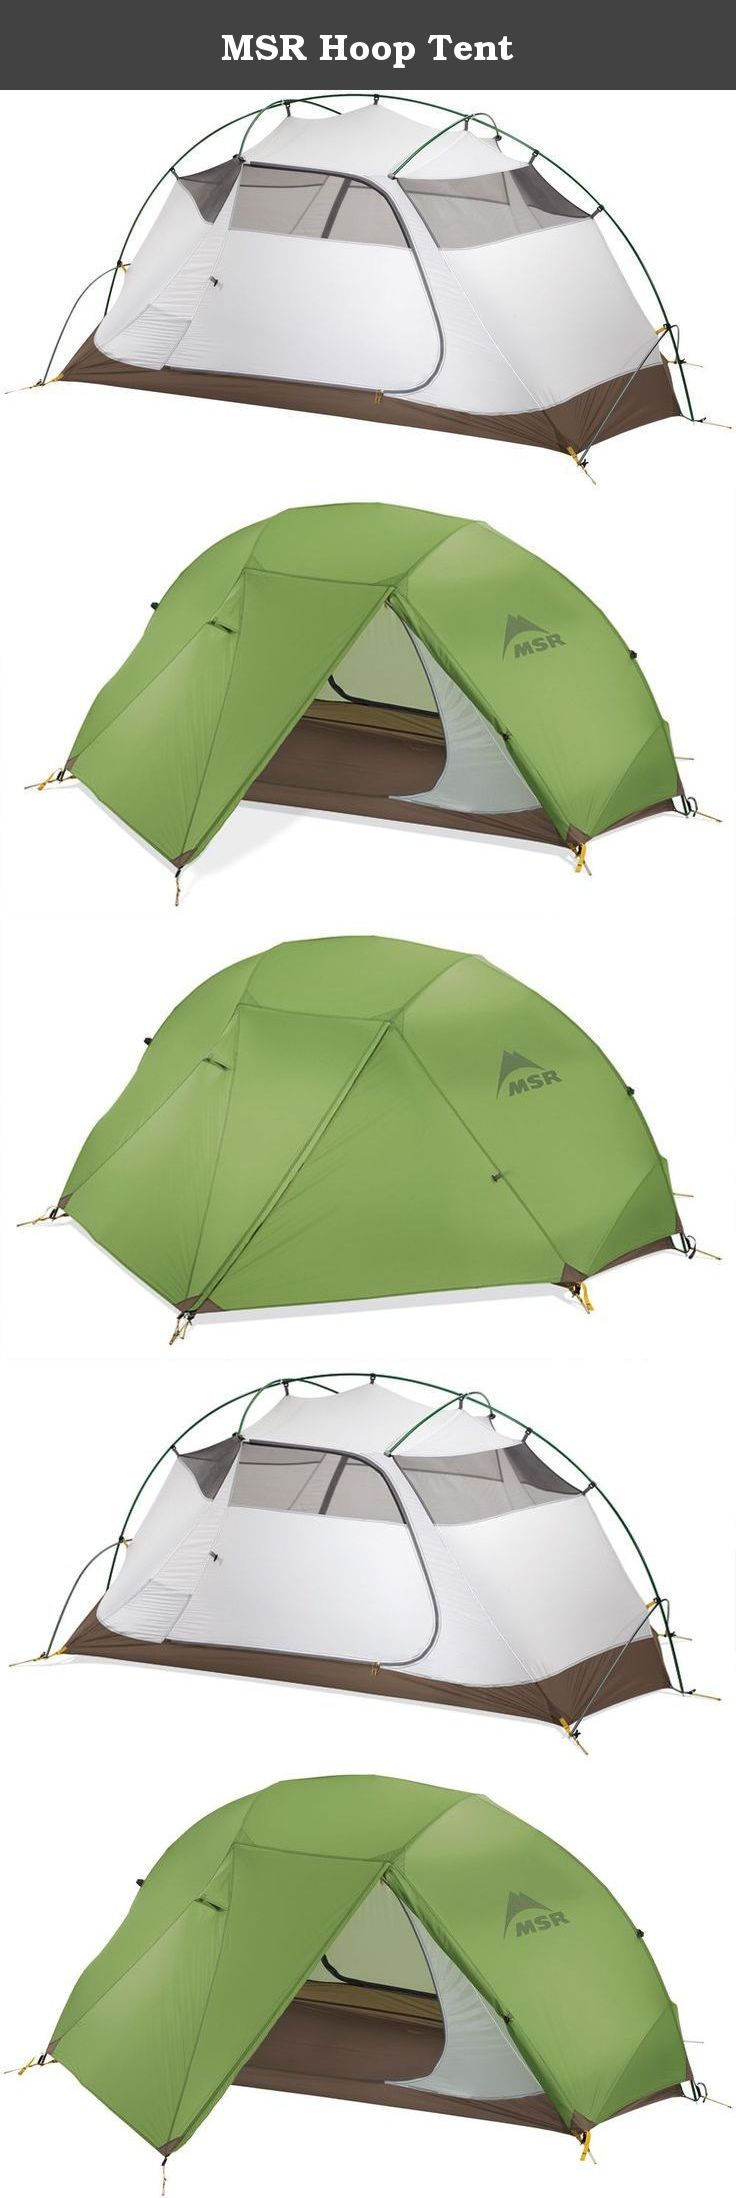 MSR Hoop Tent. Packed with do all utiltiy the 2 person Hoop tent delivers  sc 1 st  Pinterest & MSR Hoop Tent. Packed with do all utiltiy the 2 person Hoop tent ...